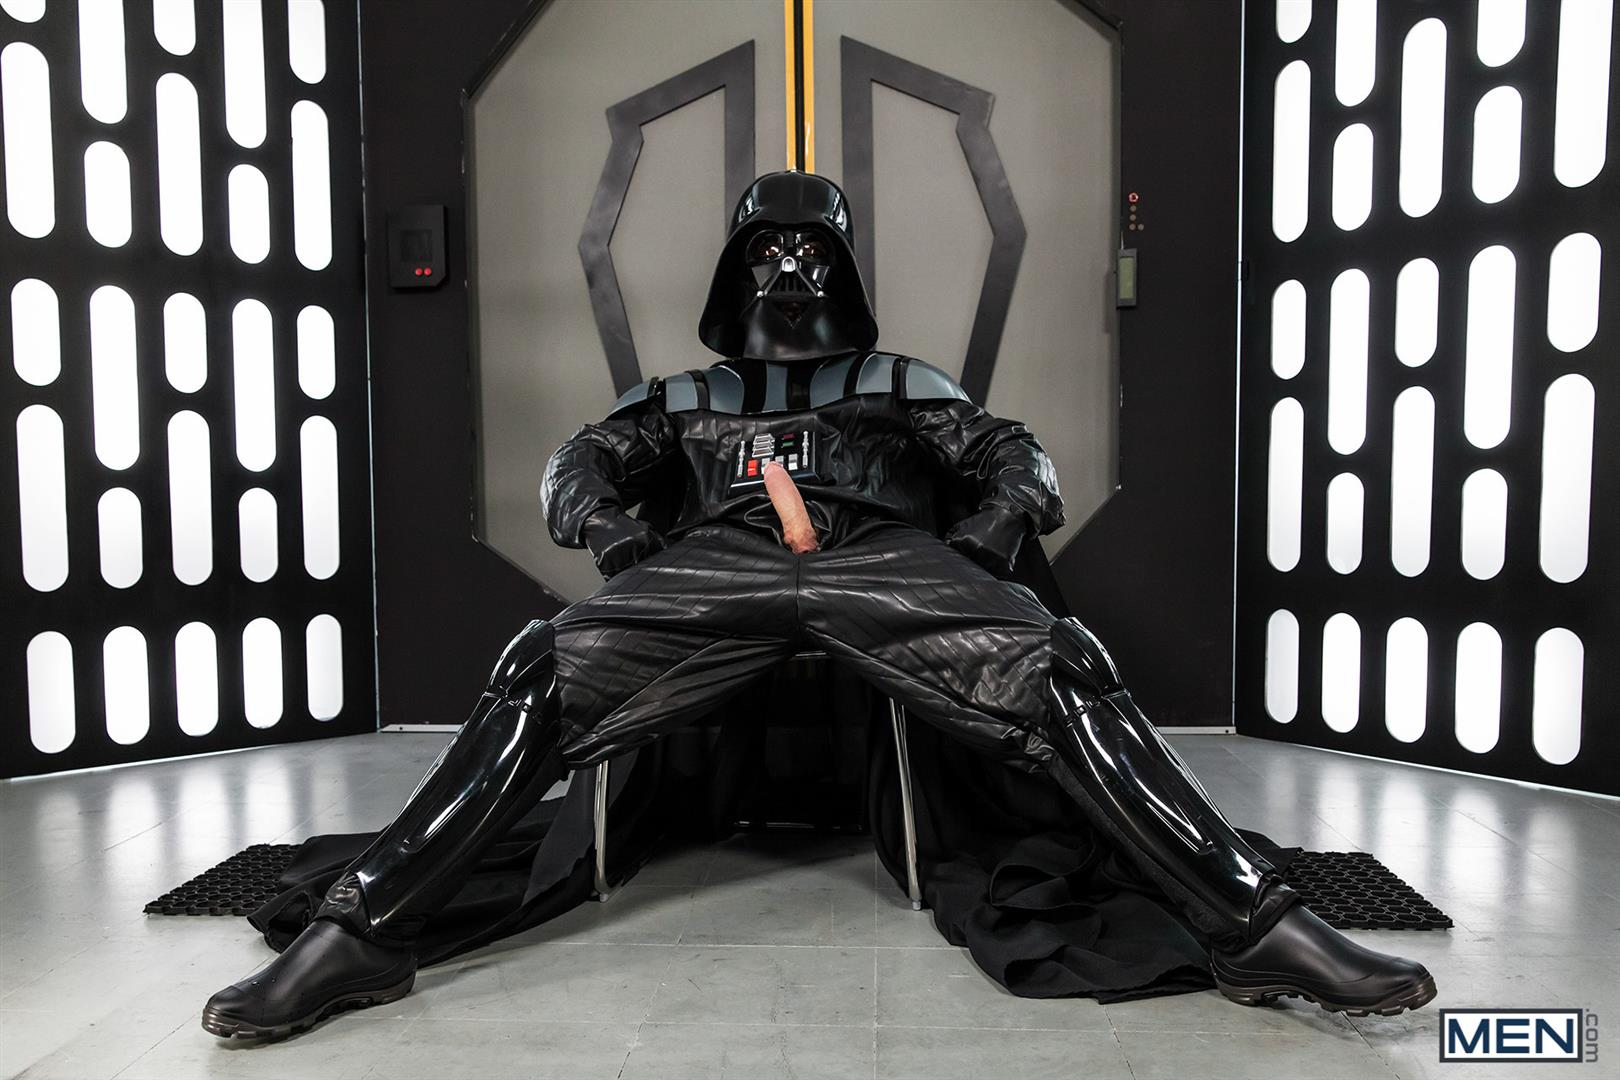 Men Dennis West Gay Star Wars Parody XXX Amateur Gay Porn 19 Who Knew that Darth Vader Likes To Fuck Man Ass?